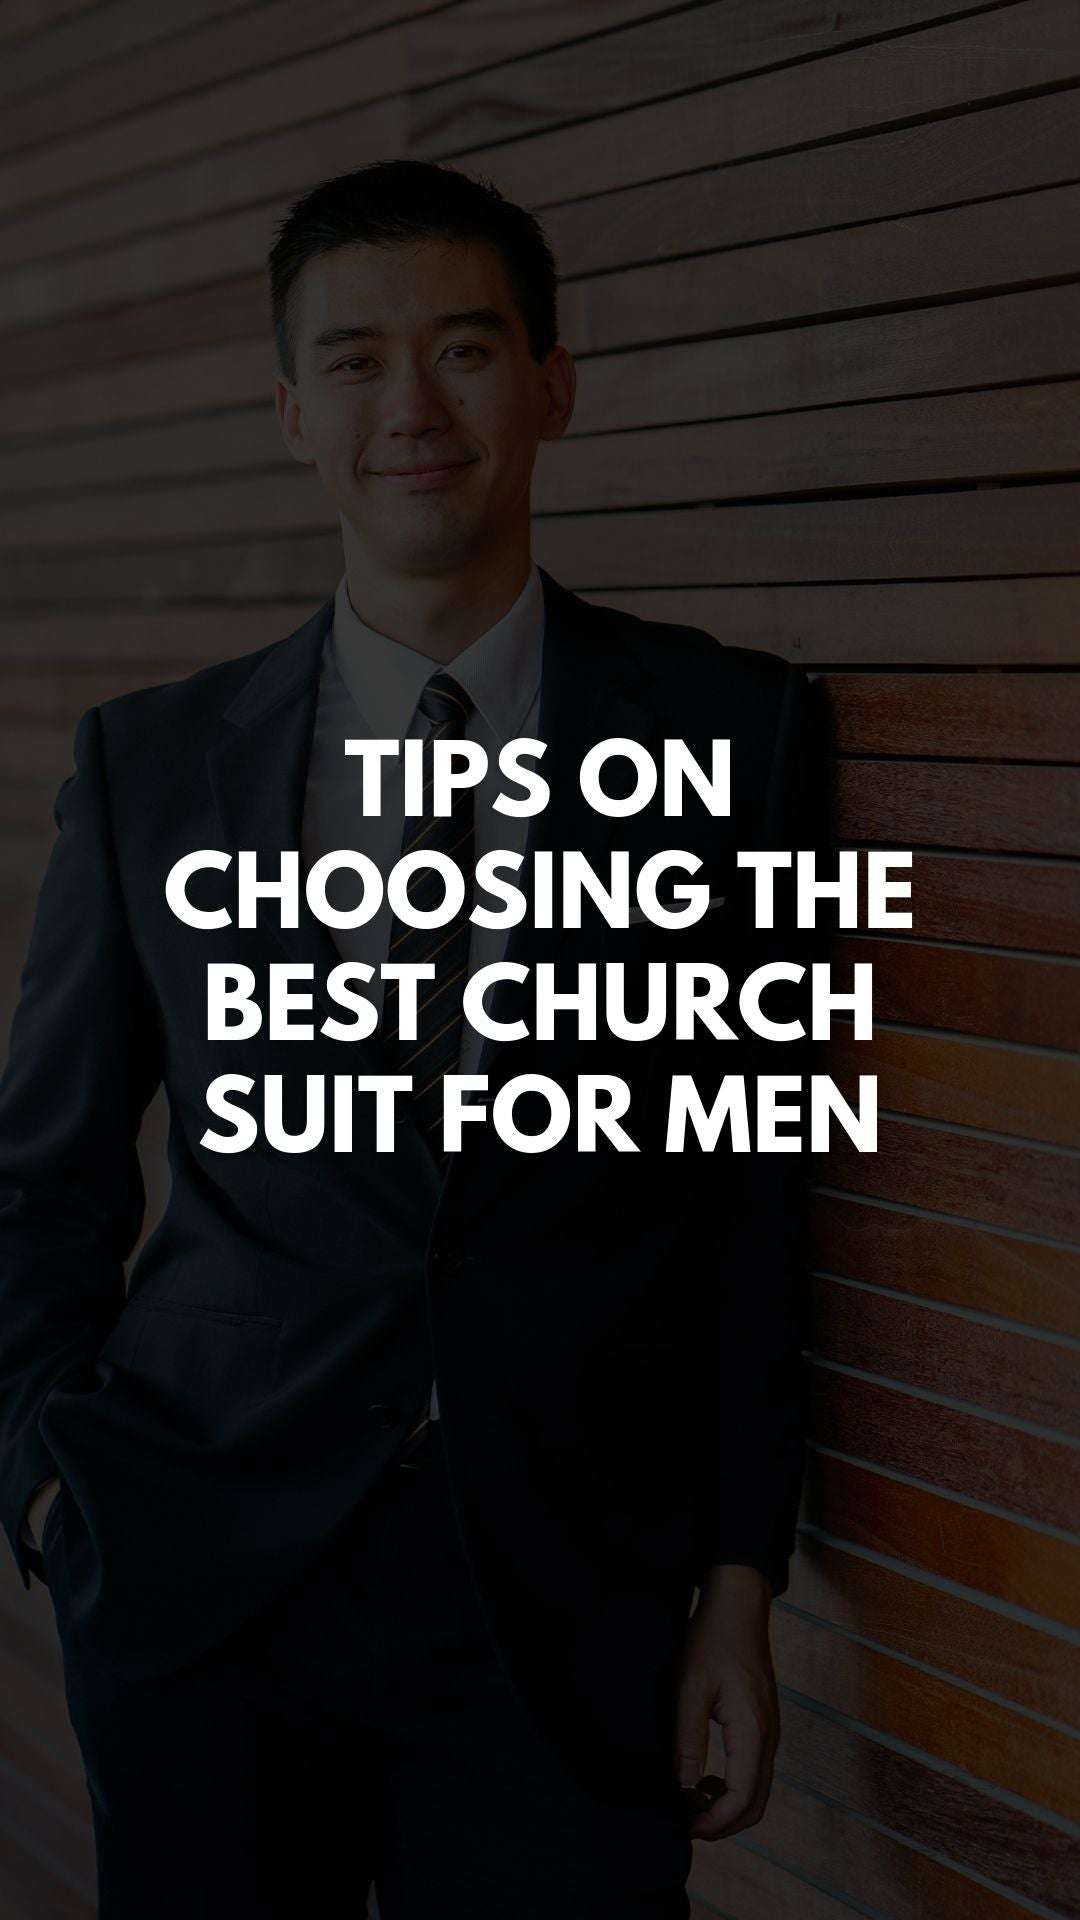 Tips On Choosing The Best Church Suit For Men